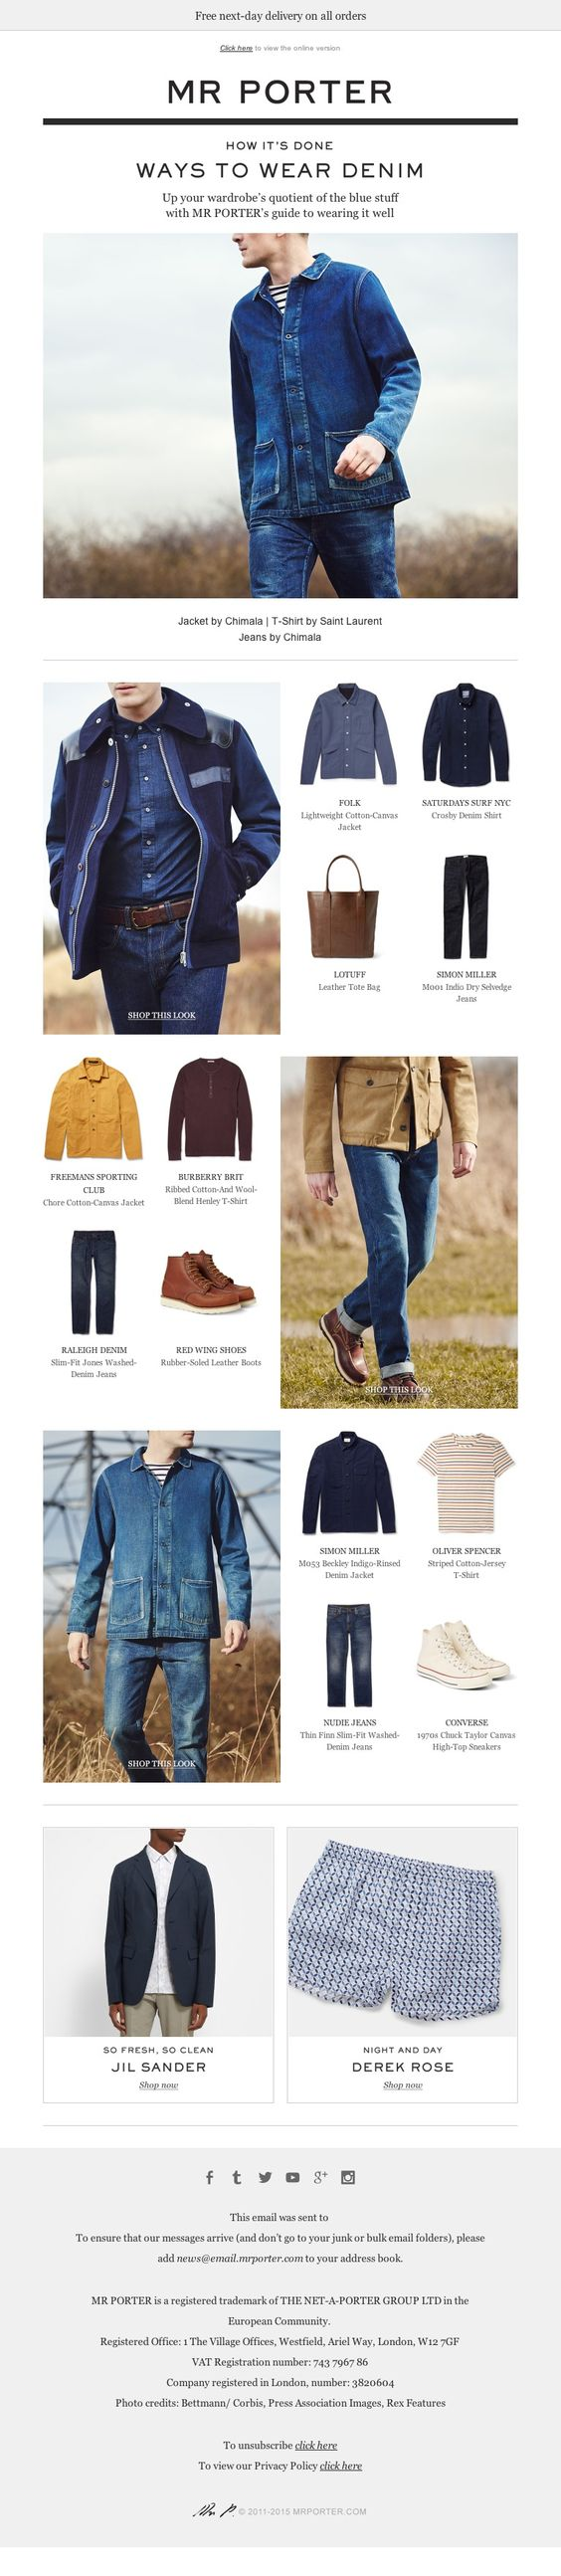 MR PORTER - Calling all twill seekers… newsletter emailing email